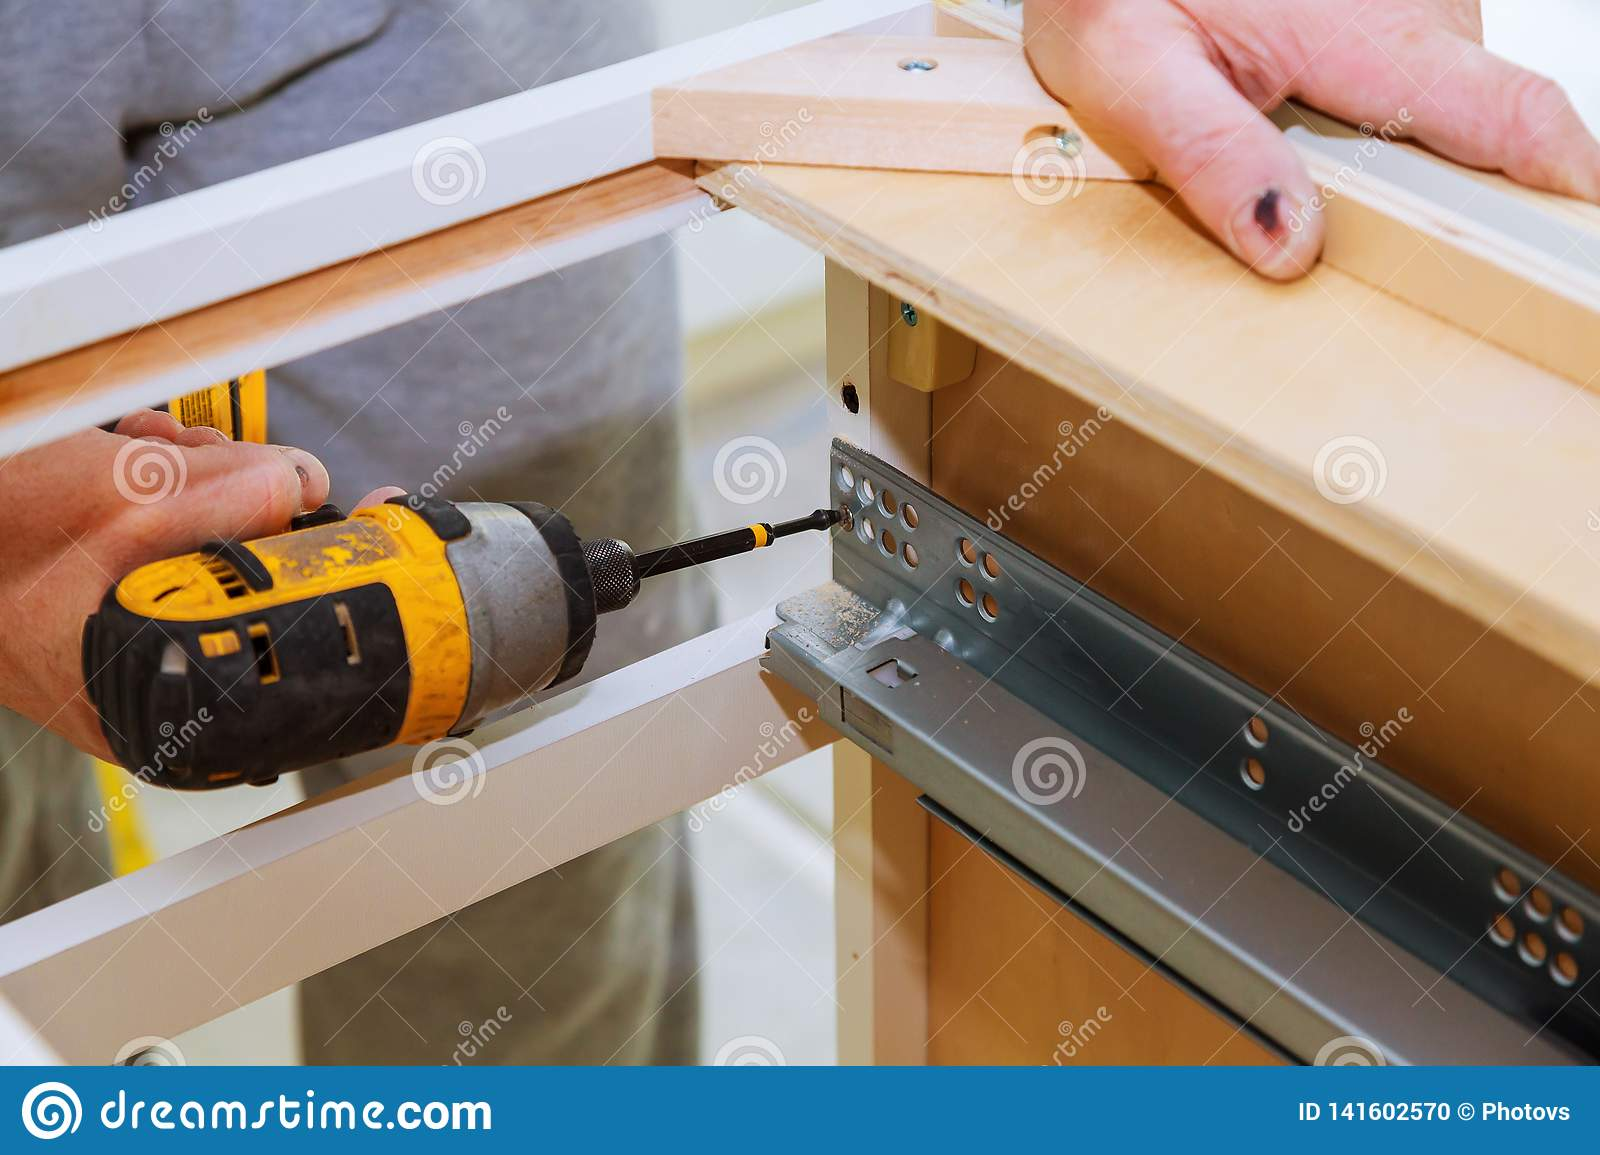 Hinge Drawers Assembly On Kitchen Cabinet Door Stock Photo ...